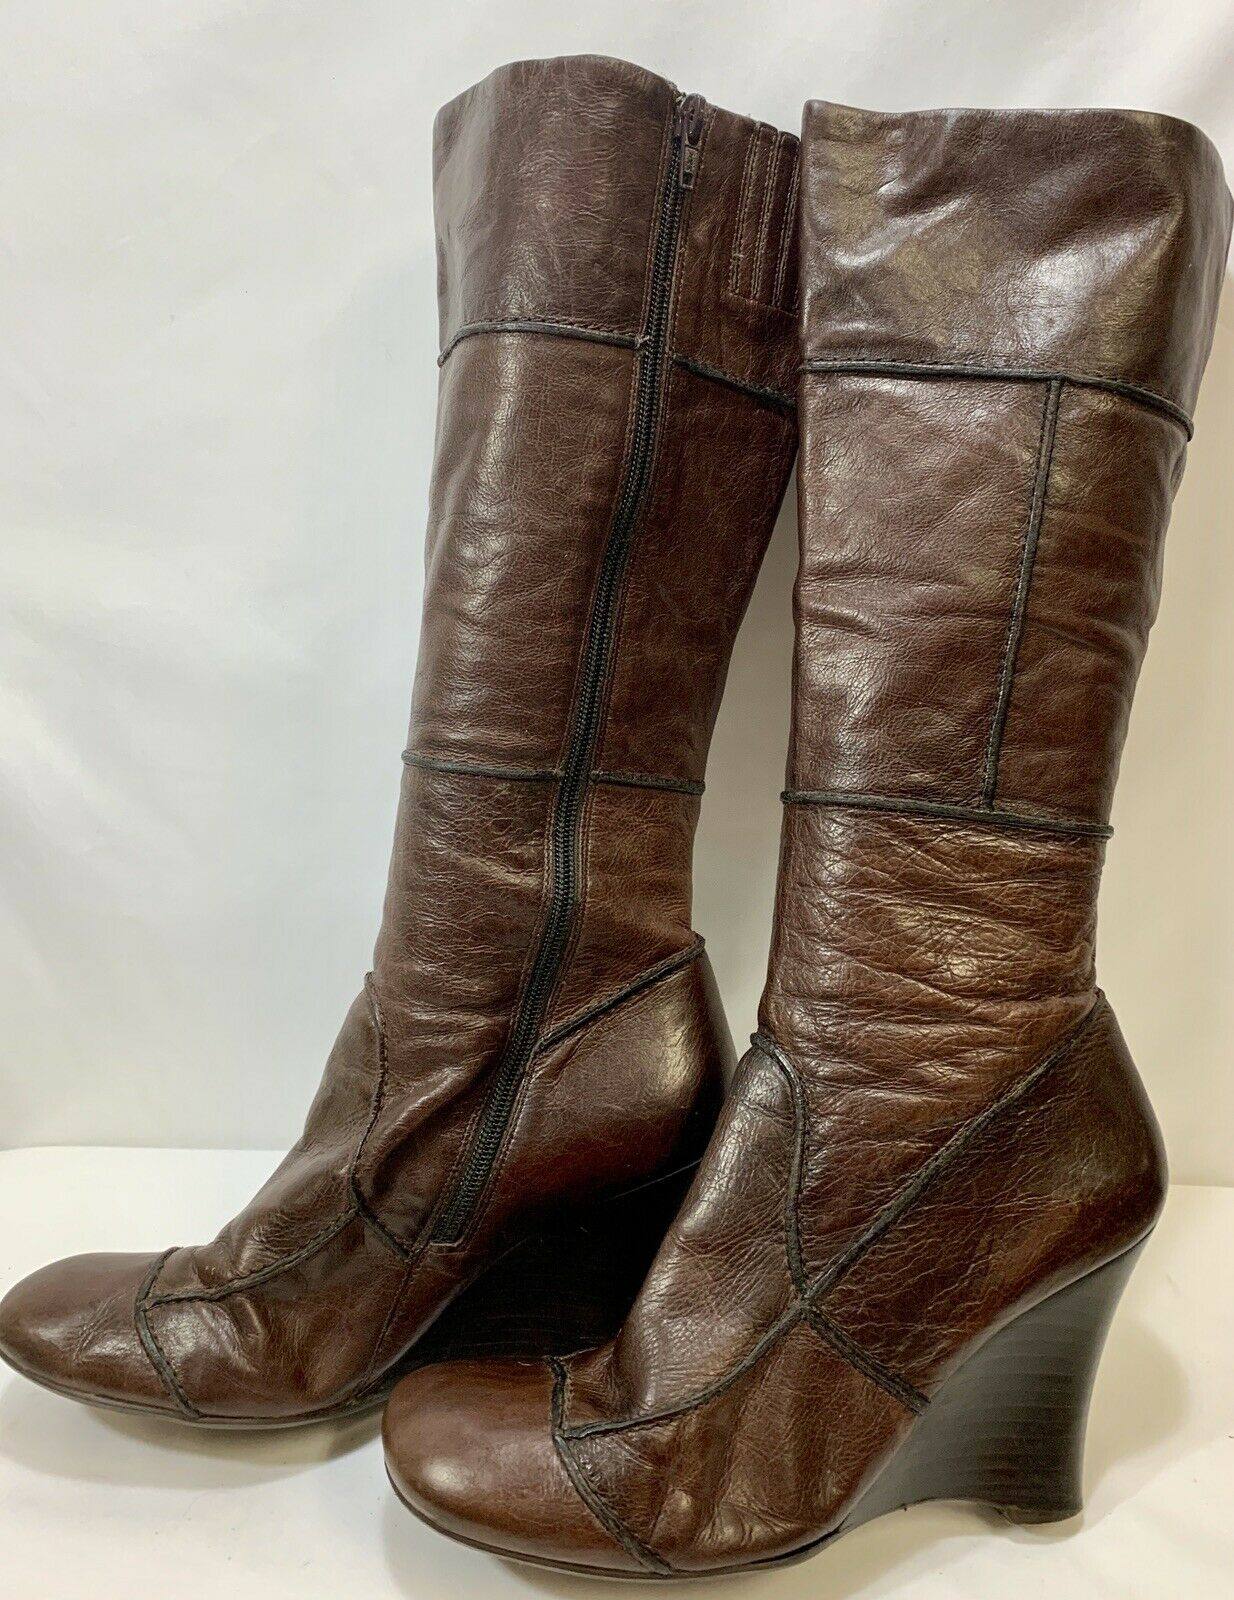 ALDO Brown Leather Side Zip Heeled Knee High Boots Women's Size 40